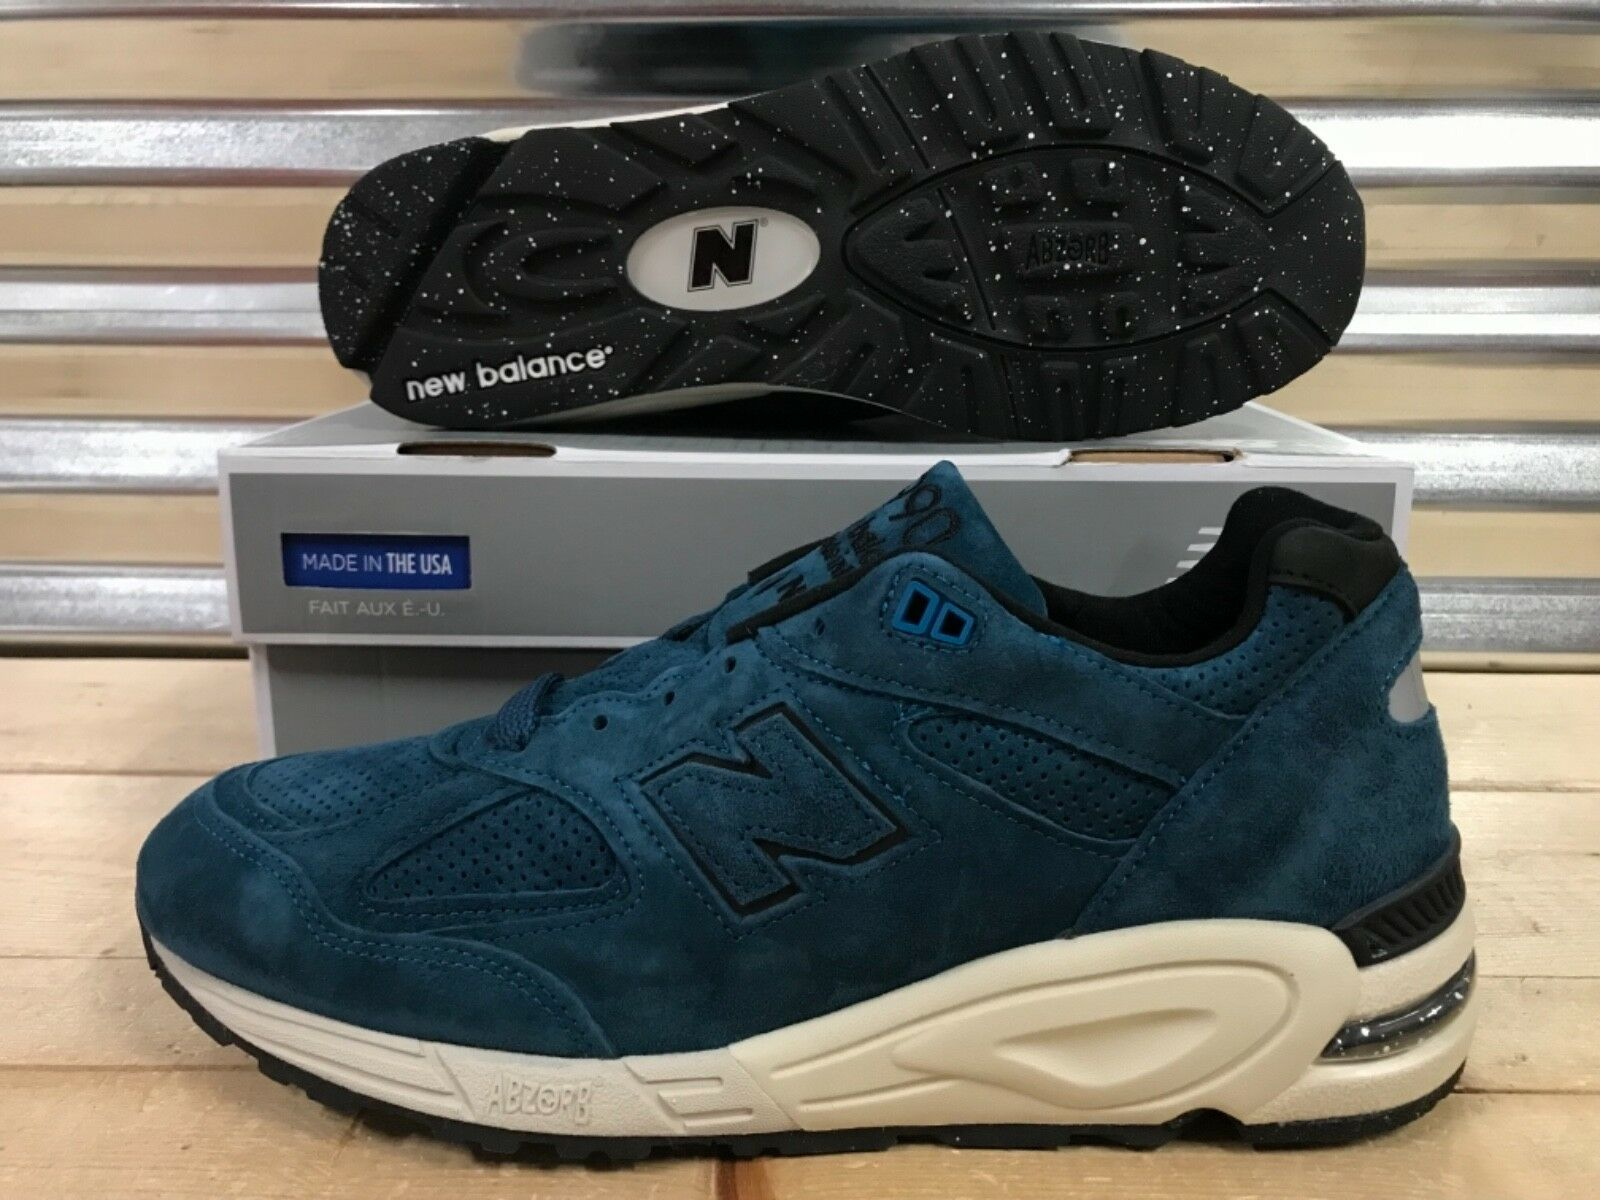 New balance 990 north color spectrum north 990 sea blue suede made in usa sz (e) eaa74d